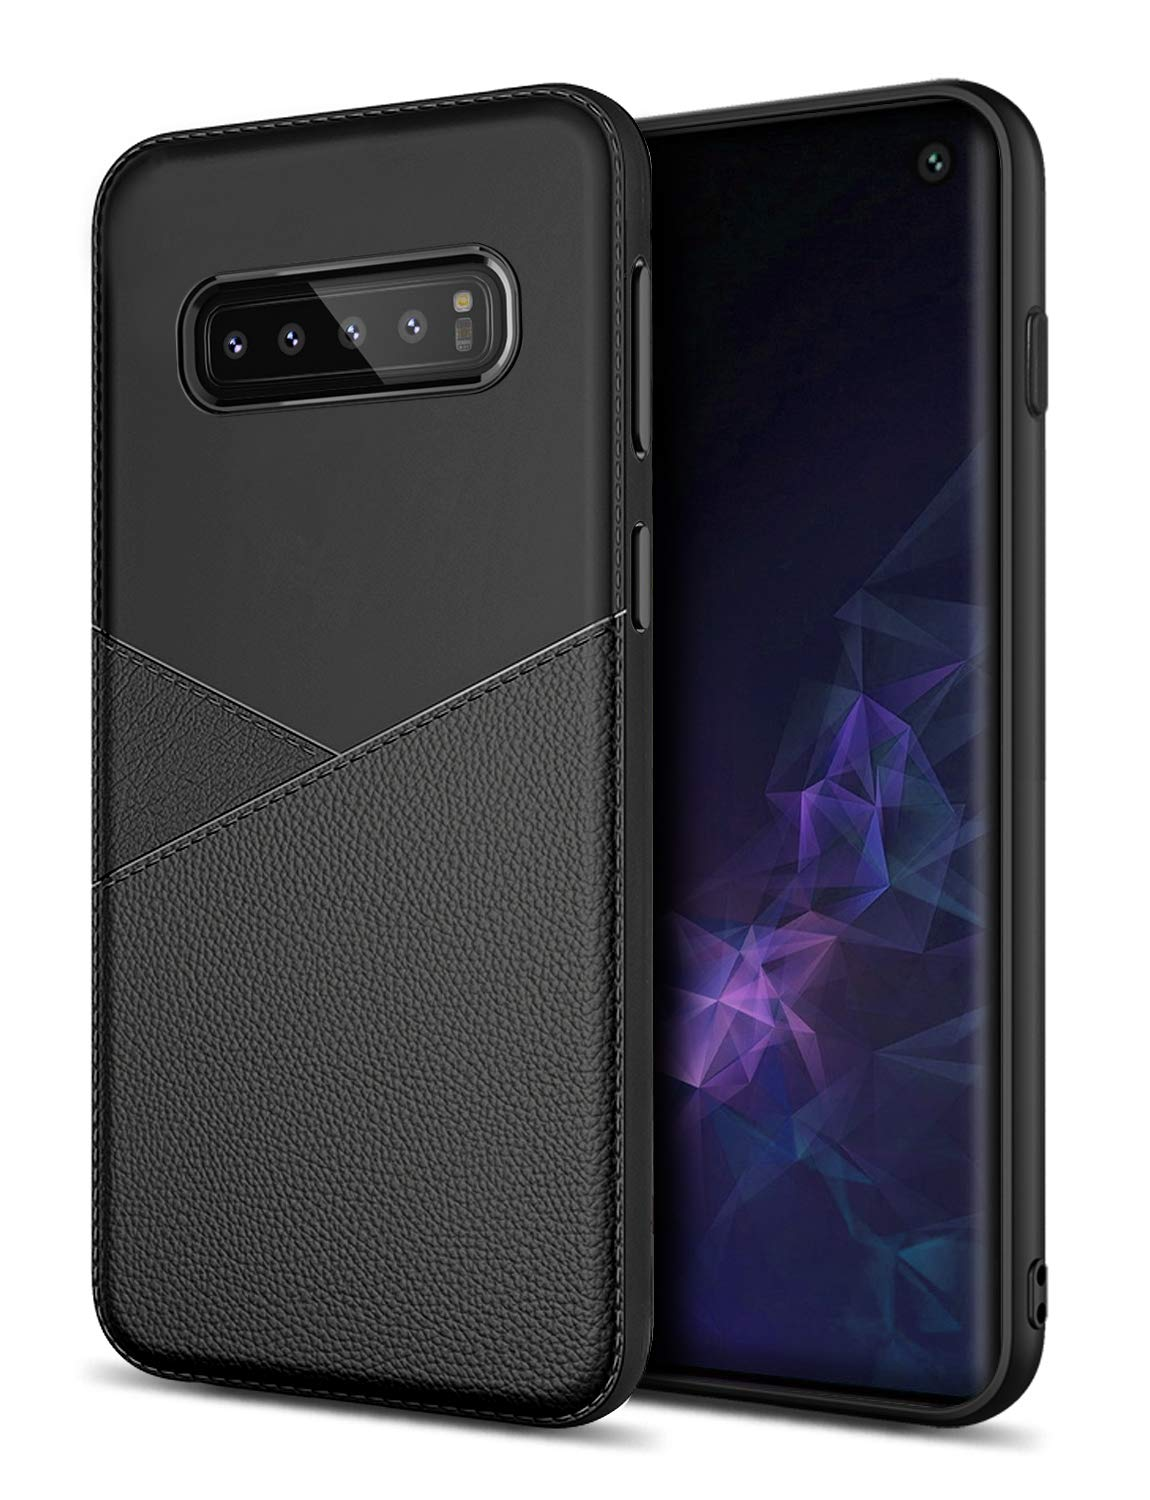 Galaxy S10 slim case